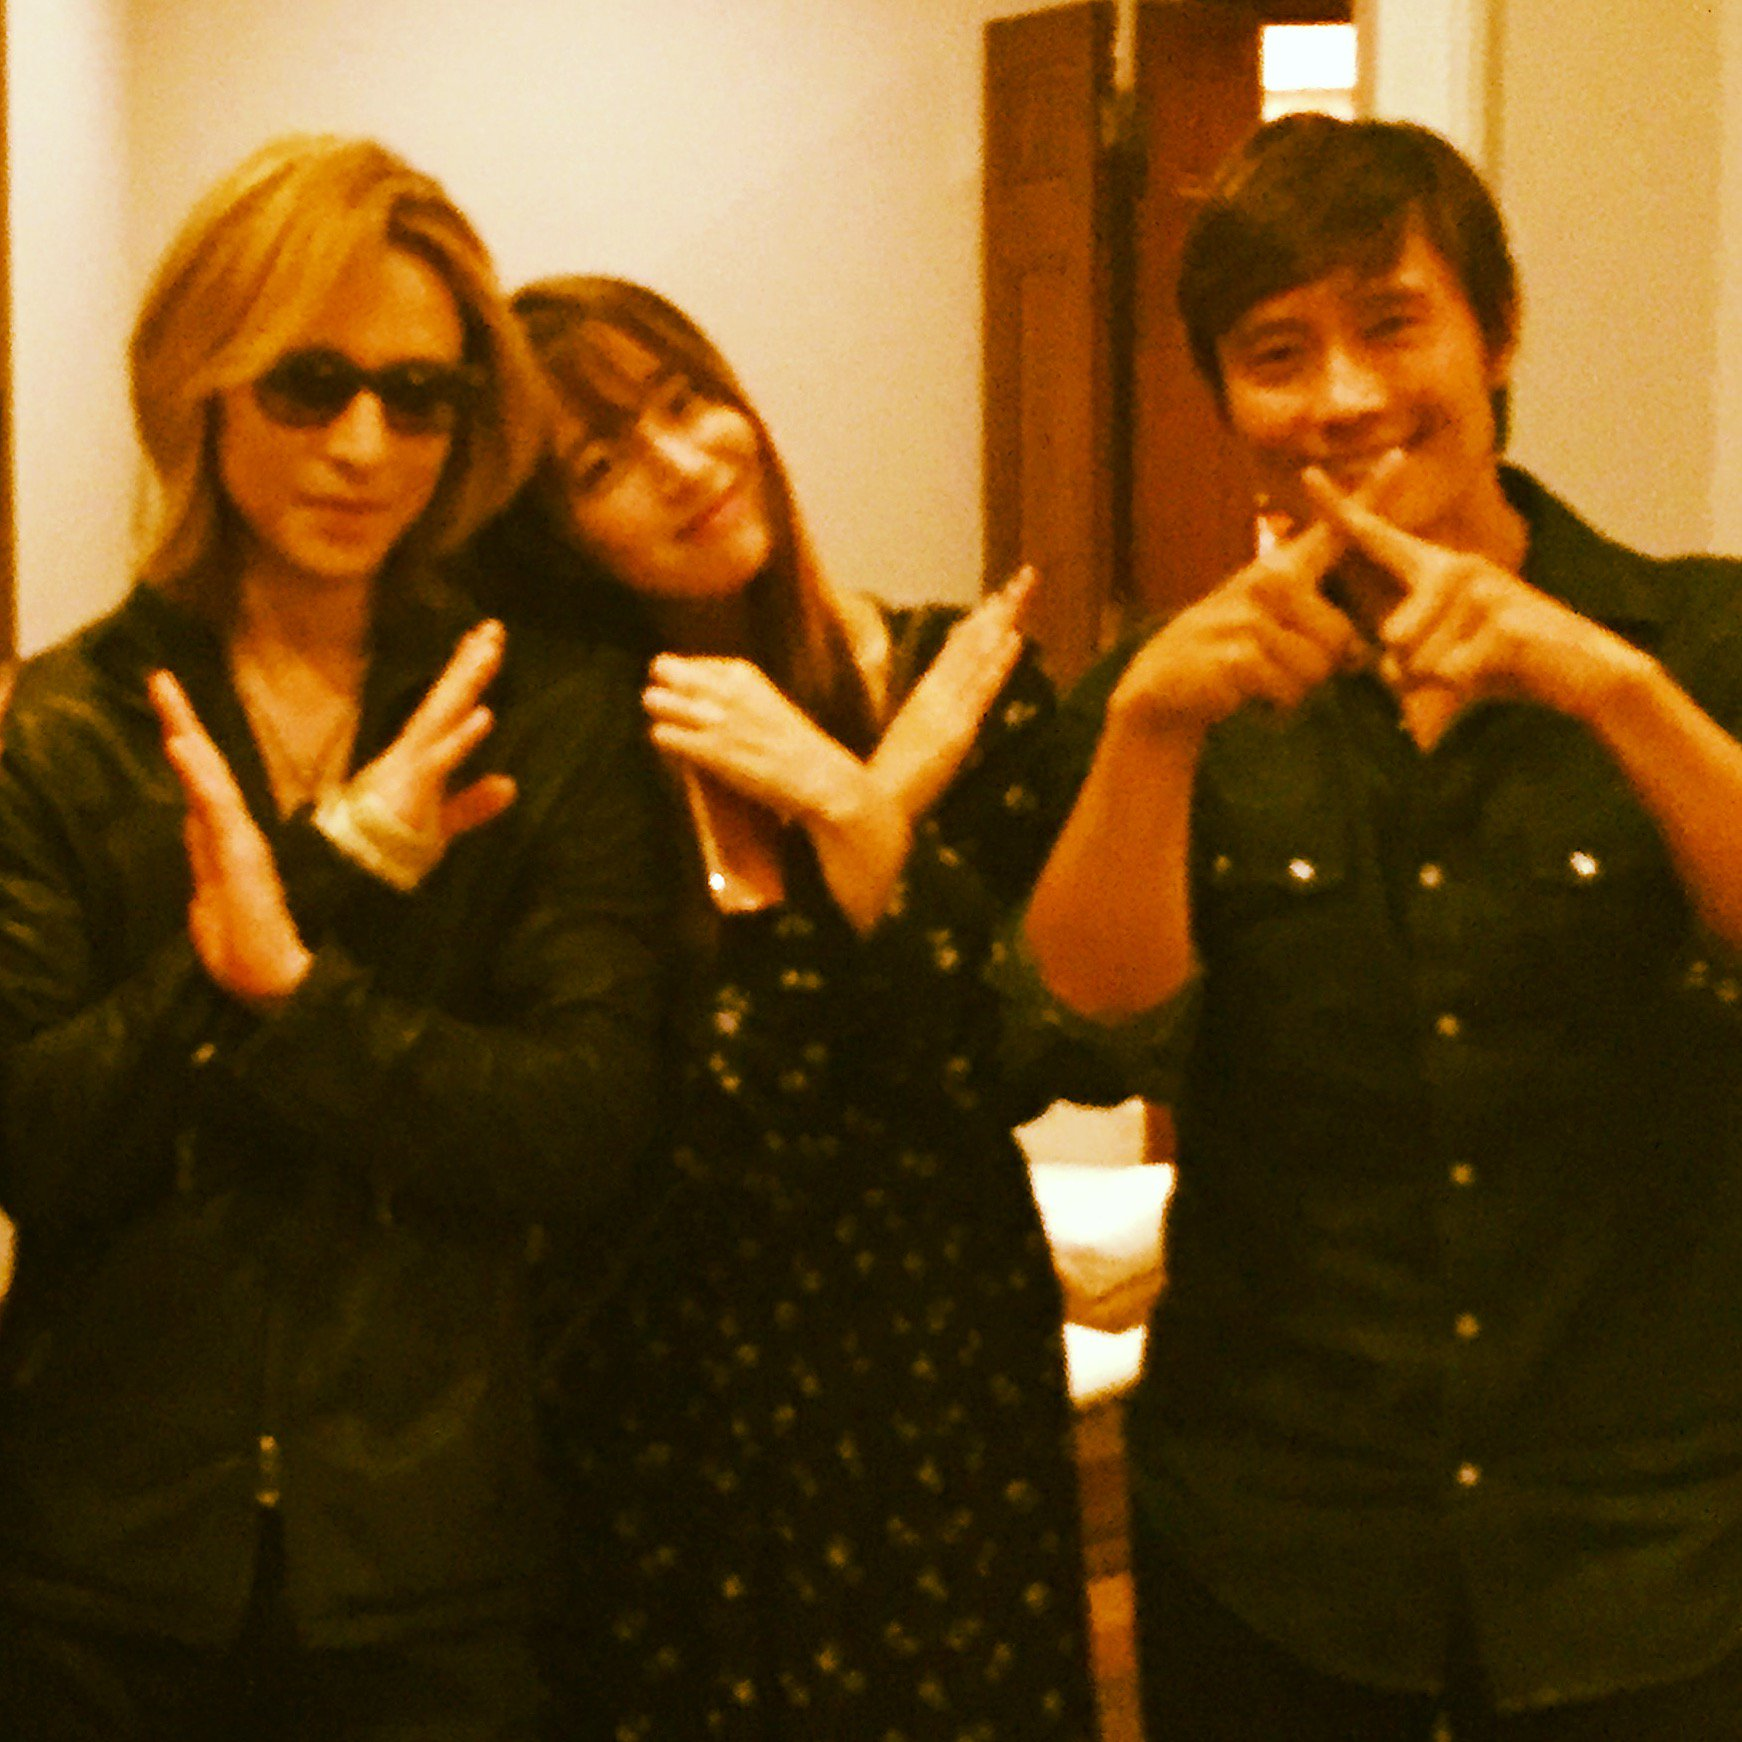 yoshiki on twitter   u0026quot in la  with lee byung